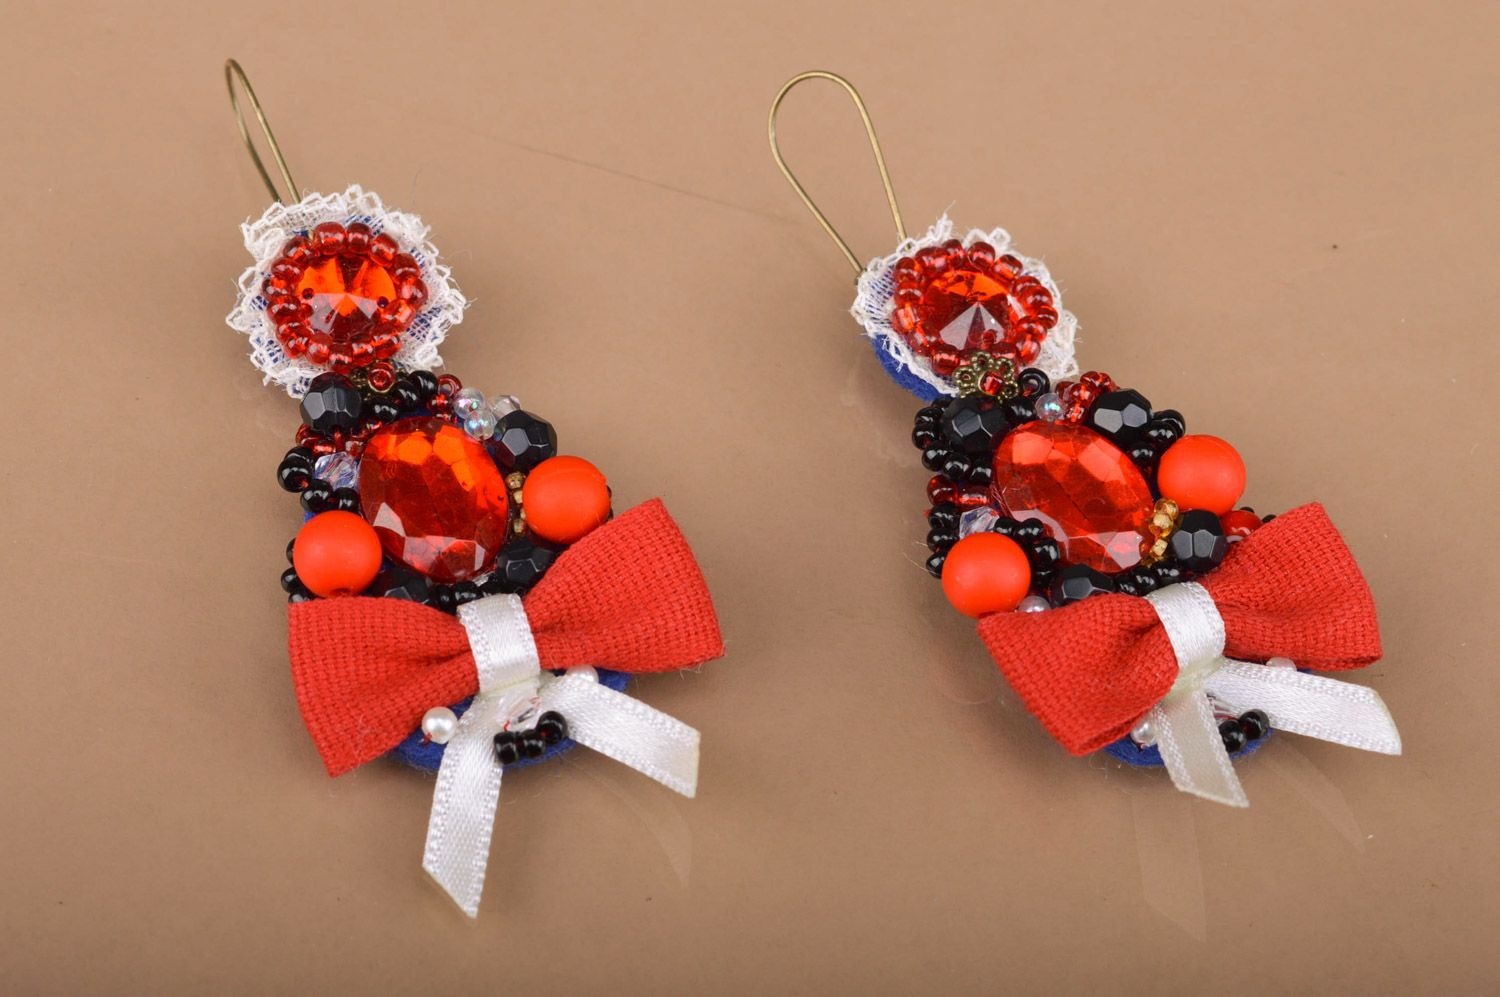 Handmade festive beaded dangle earrings with bows in red color palette for women photo 1